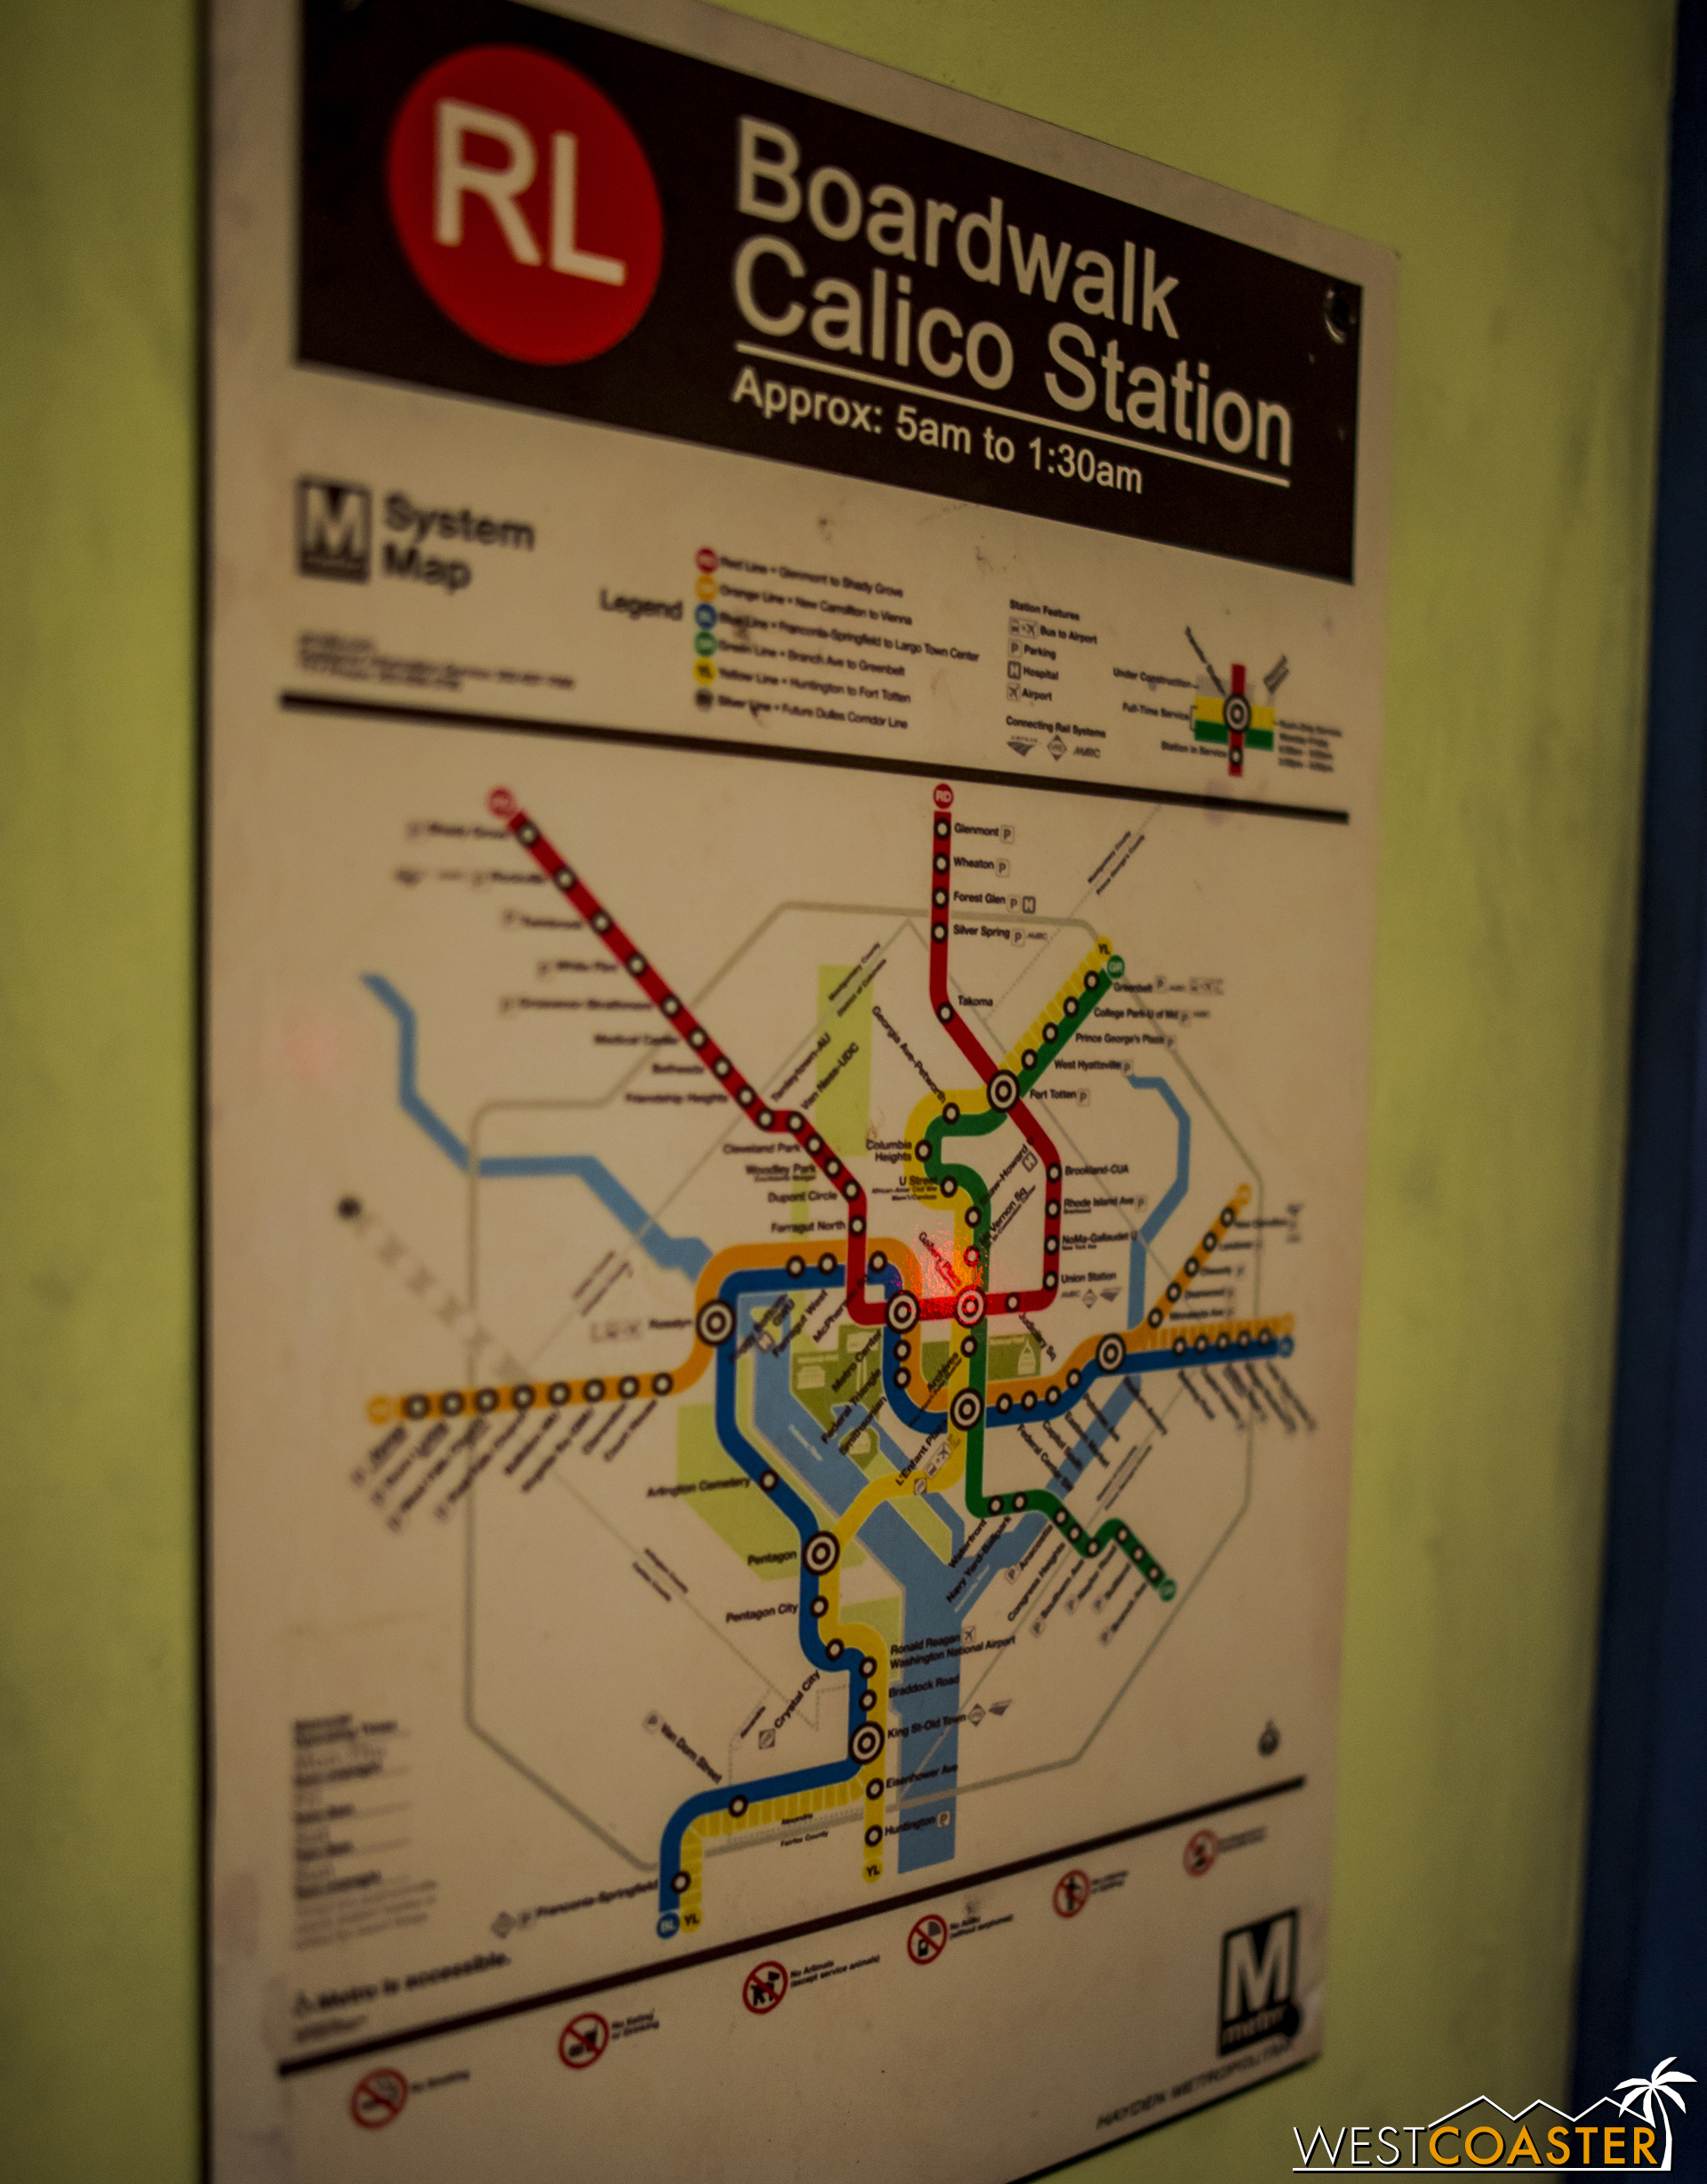 I initially thought this was a custom map, but second glance, I guess Calico is actually Washington DC!